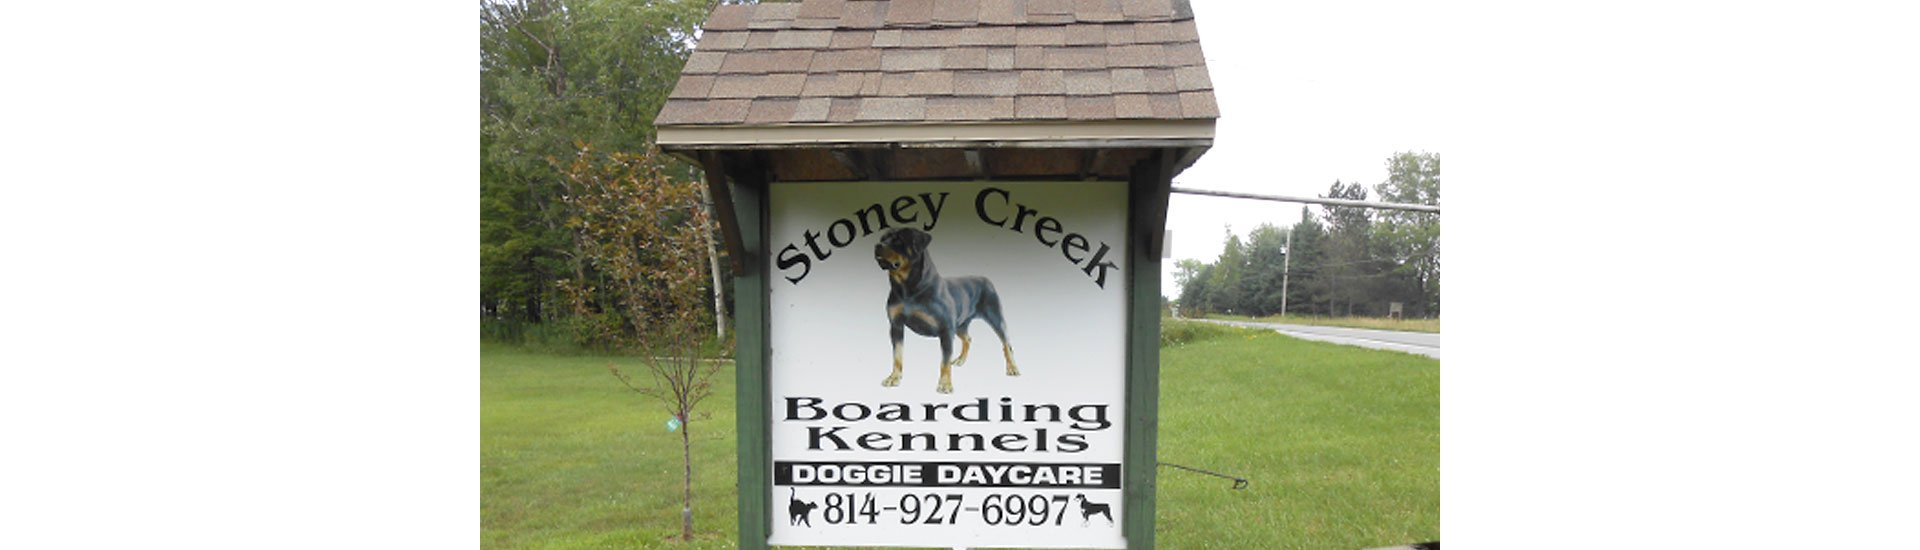 Dog Boarding Sign